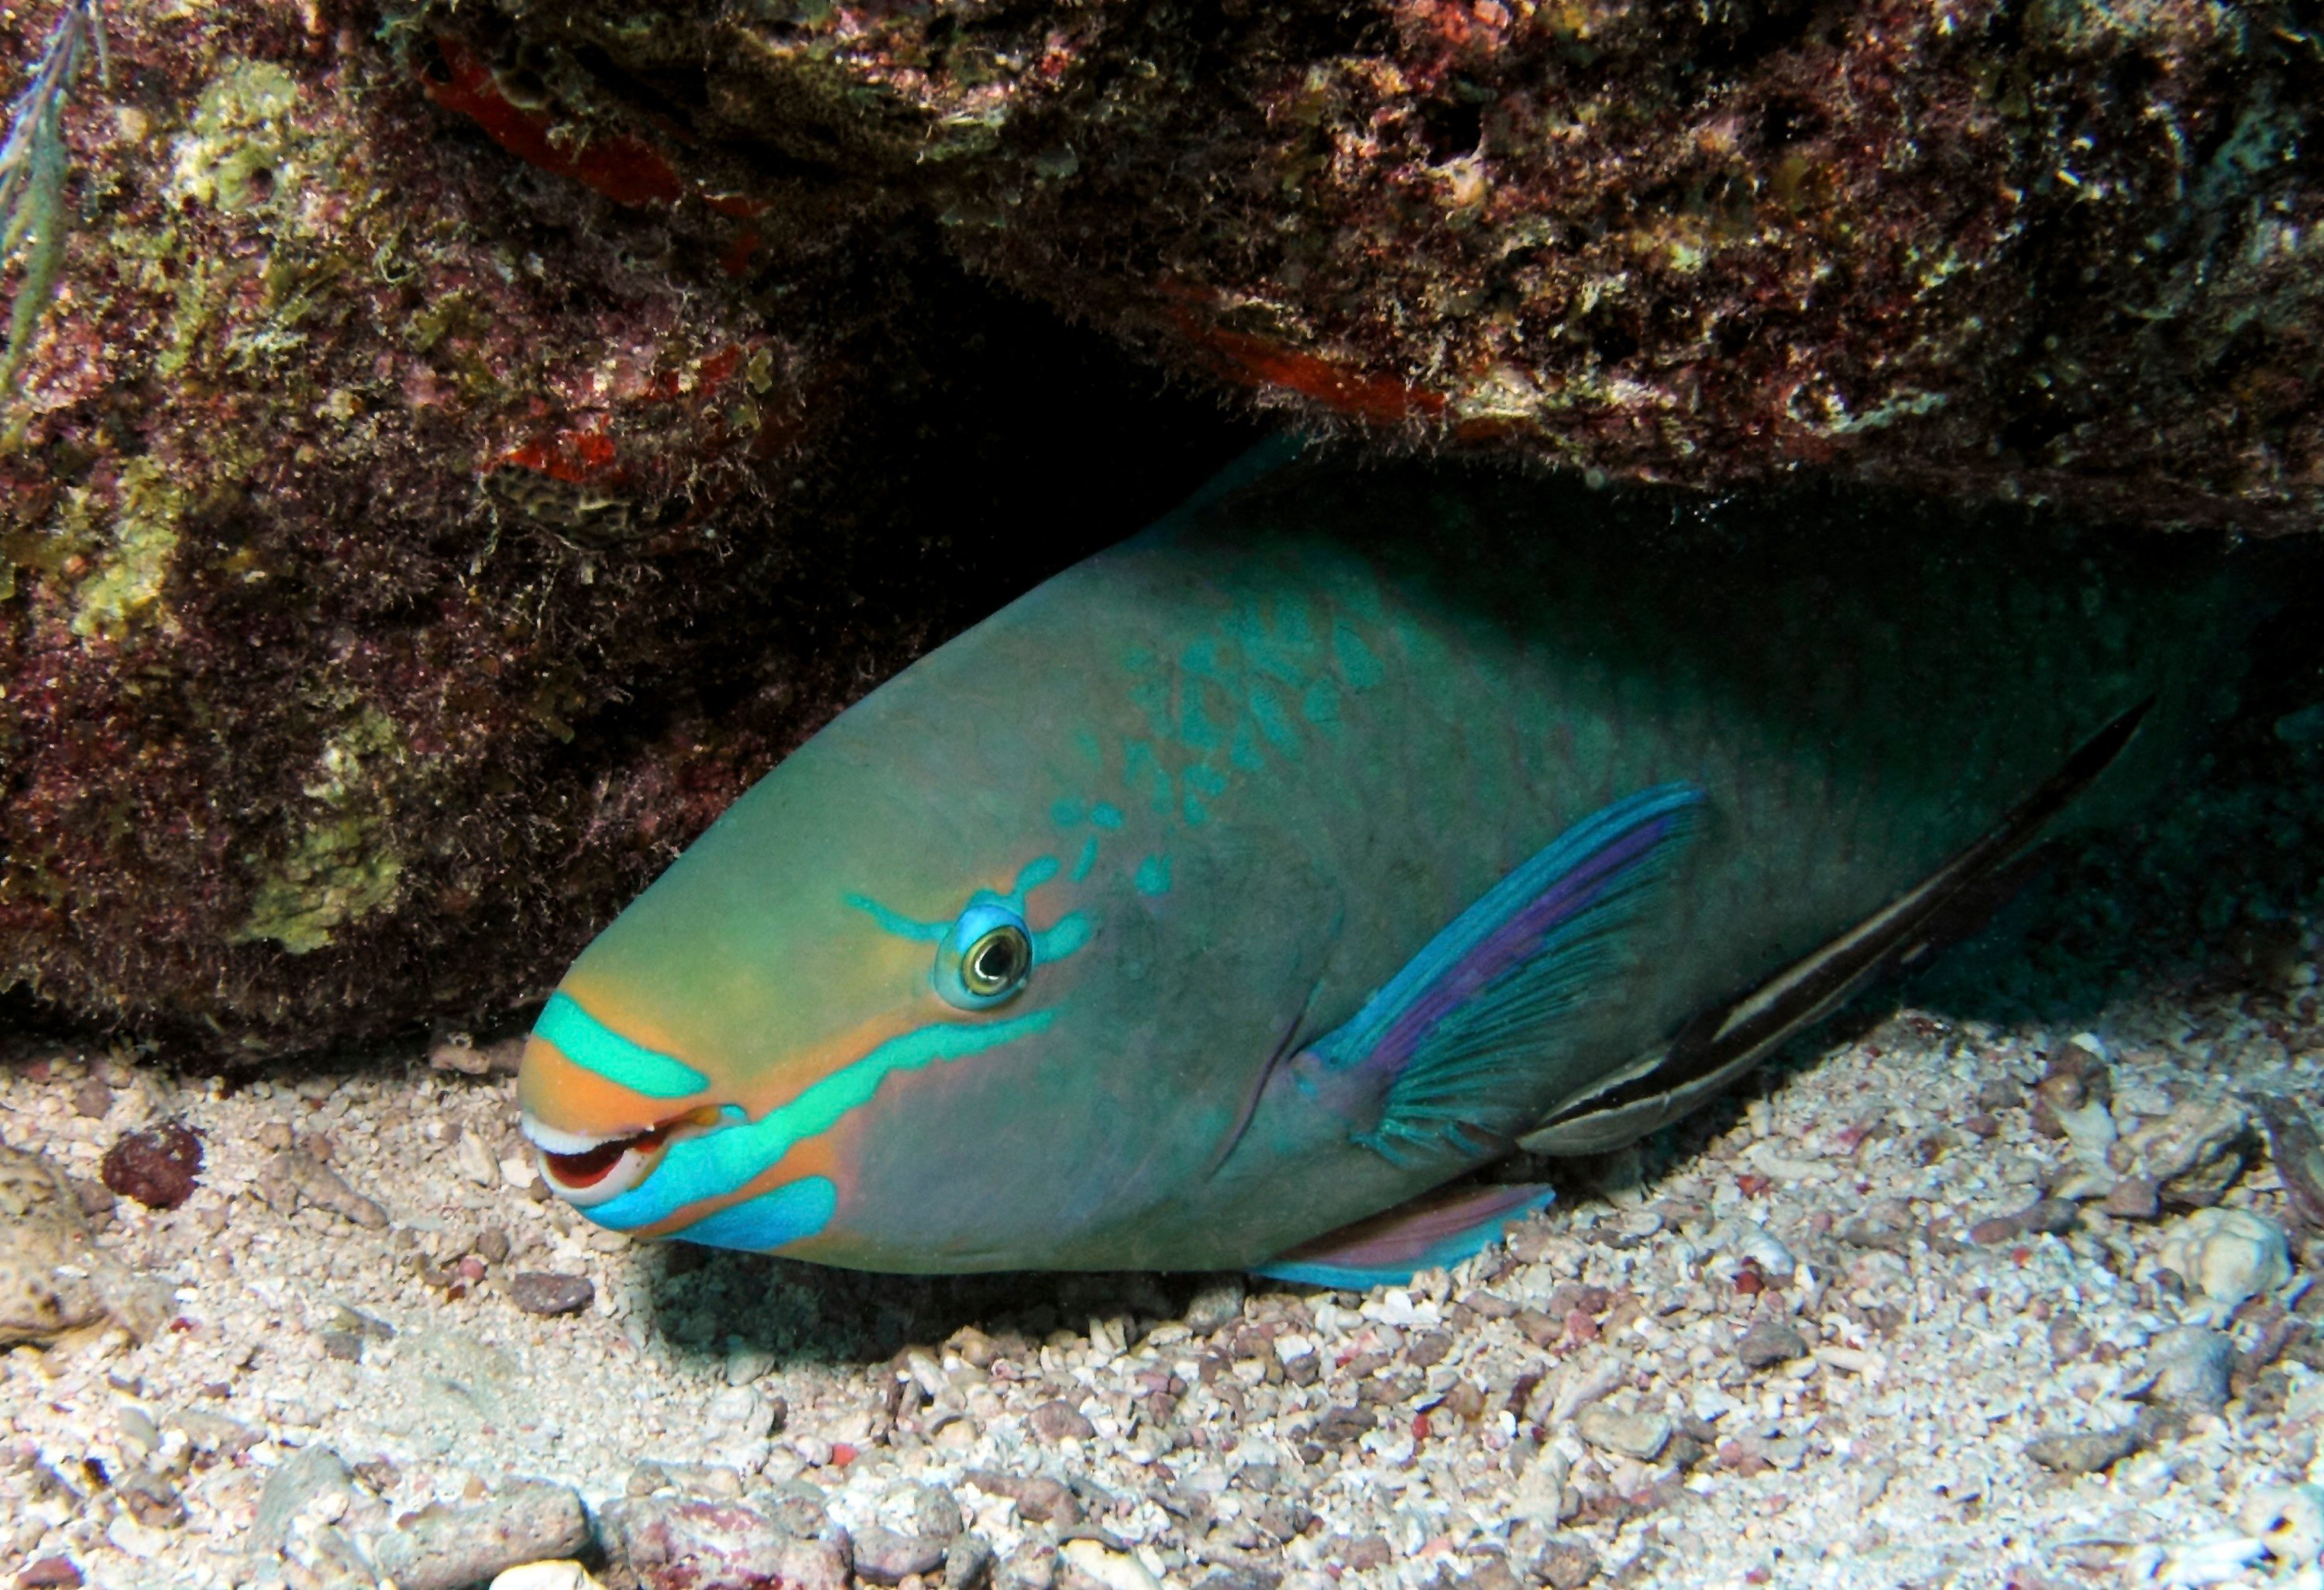 1. Parrotfish Sleep in a Bag of Their Own Mucus